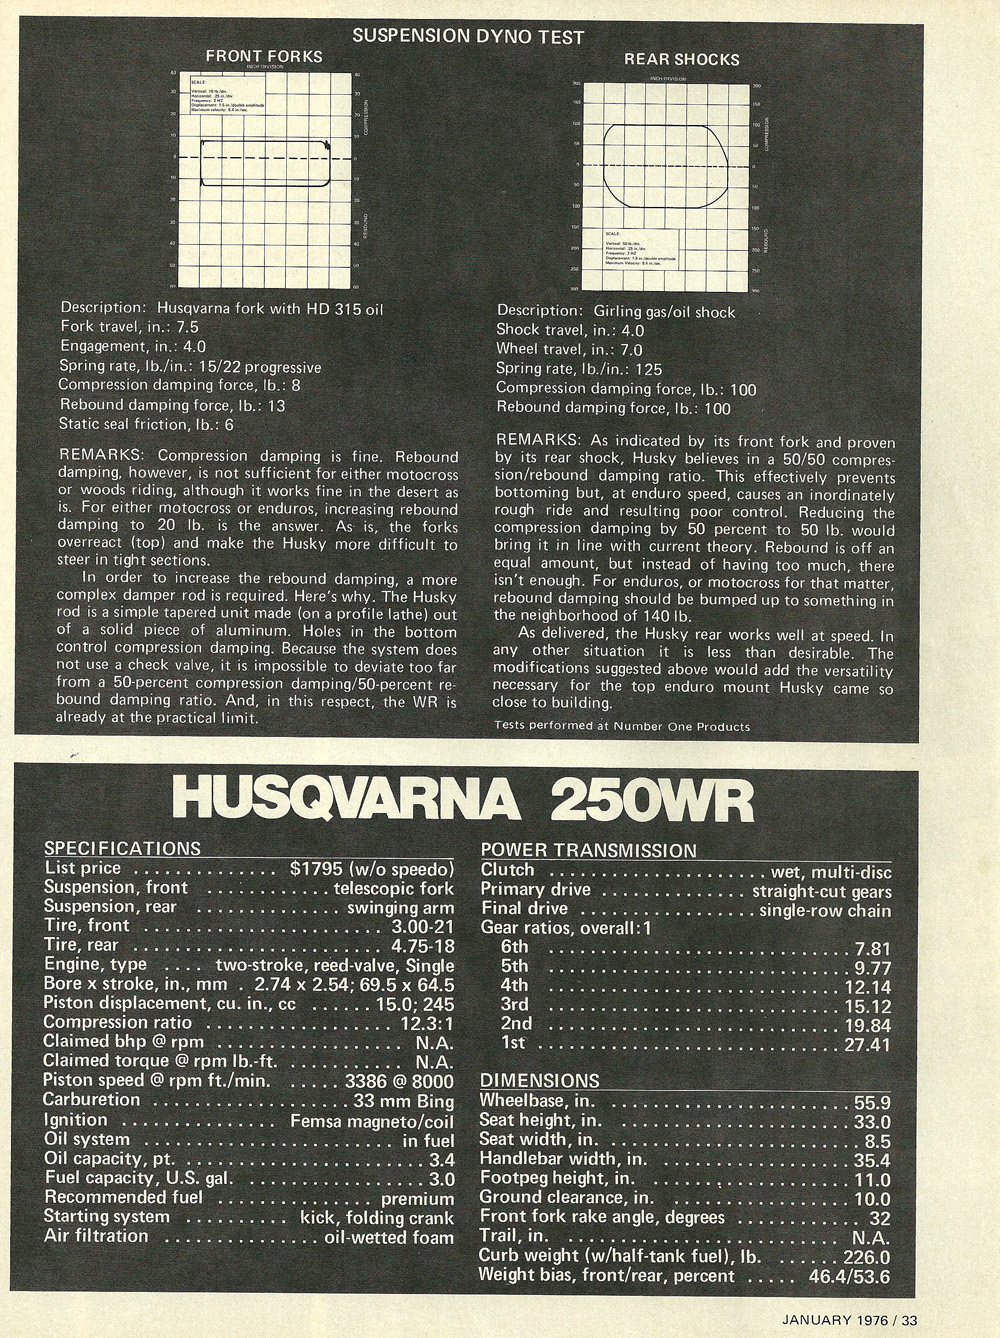 1976 Husqvarna 250WR road test 07.jpg